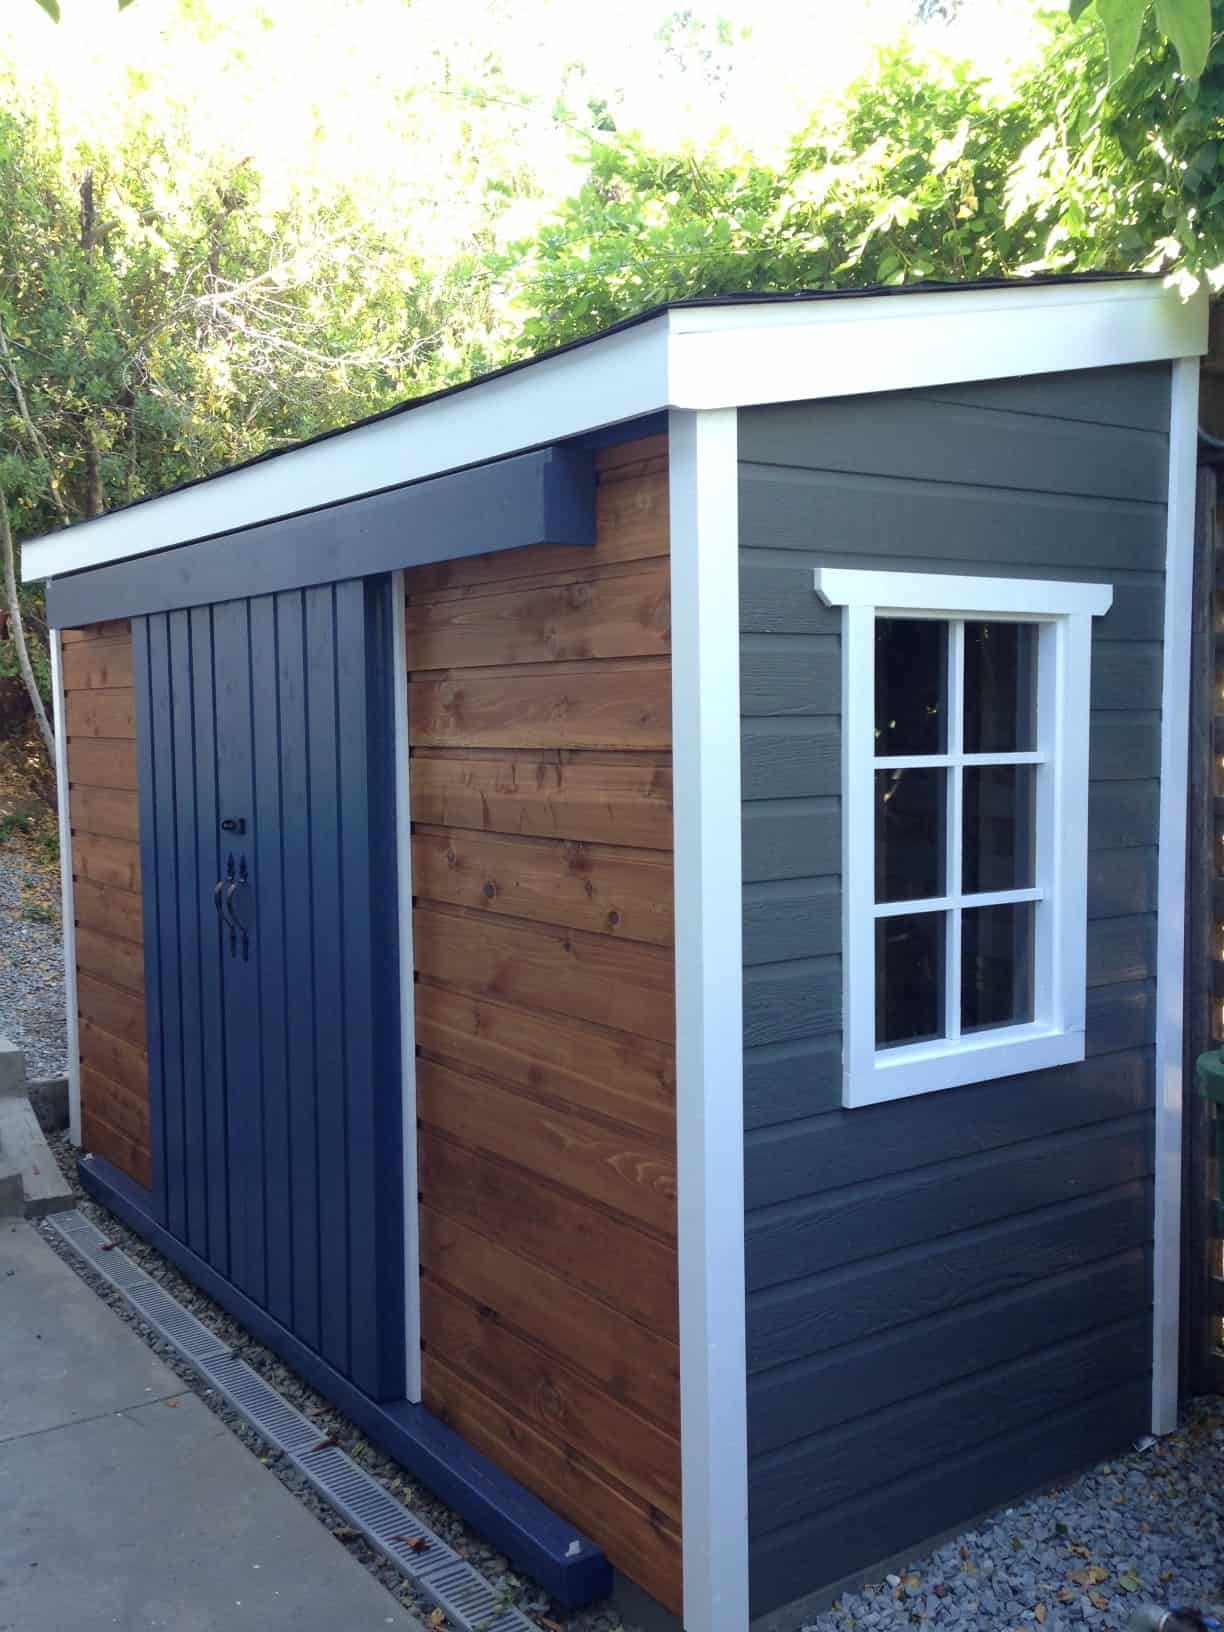 Sarawak Leaning Shed - Summerwood Products